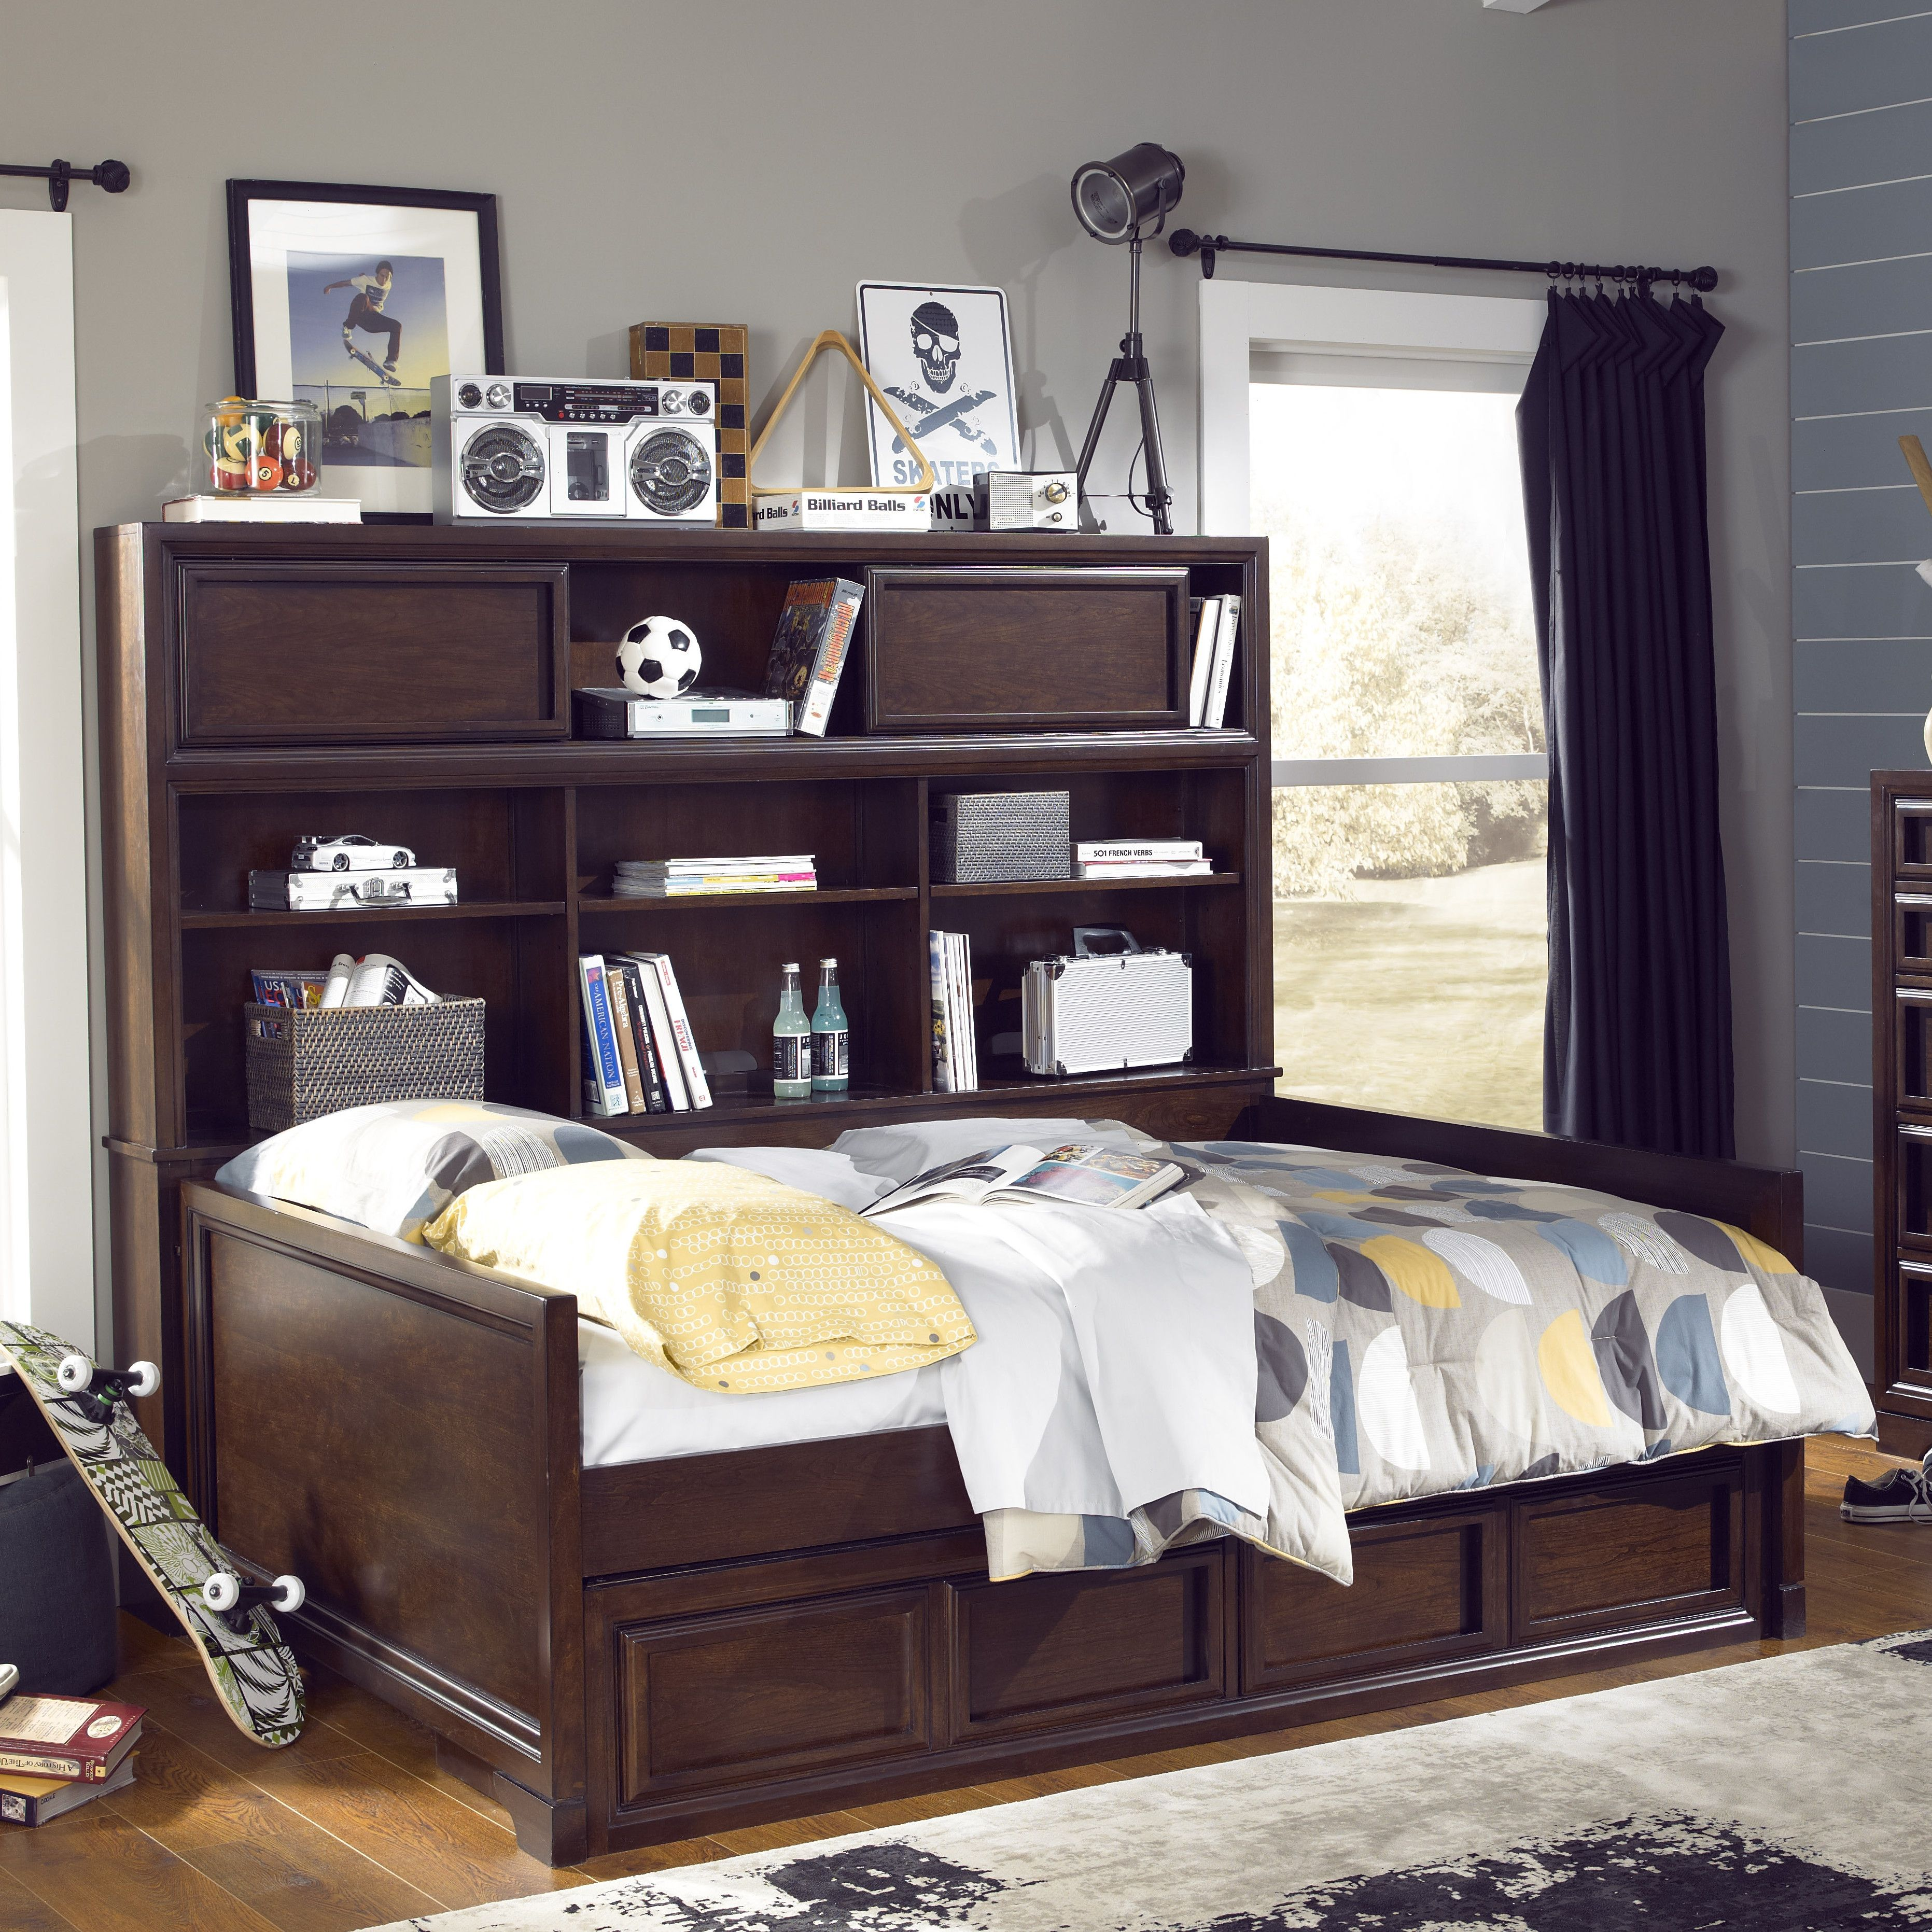 Charmant Awesome Inspirational Lc Kids Furniture 22 About Remodel Home Design Ideas  With Lc Kids Furniture